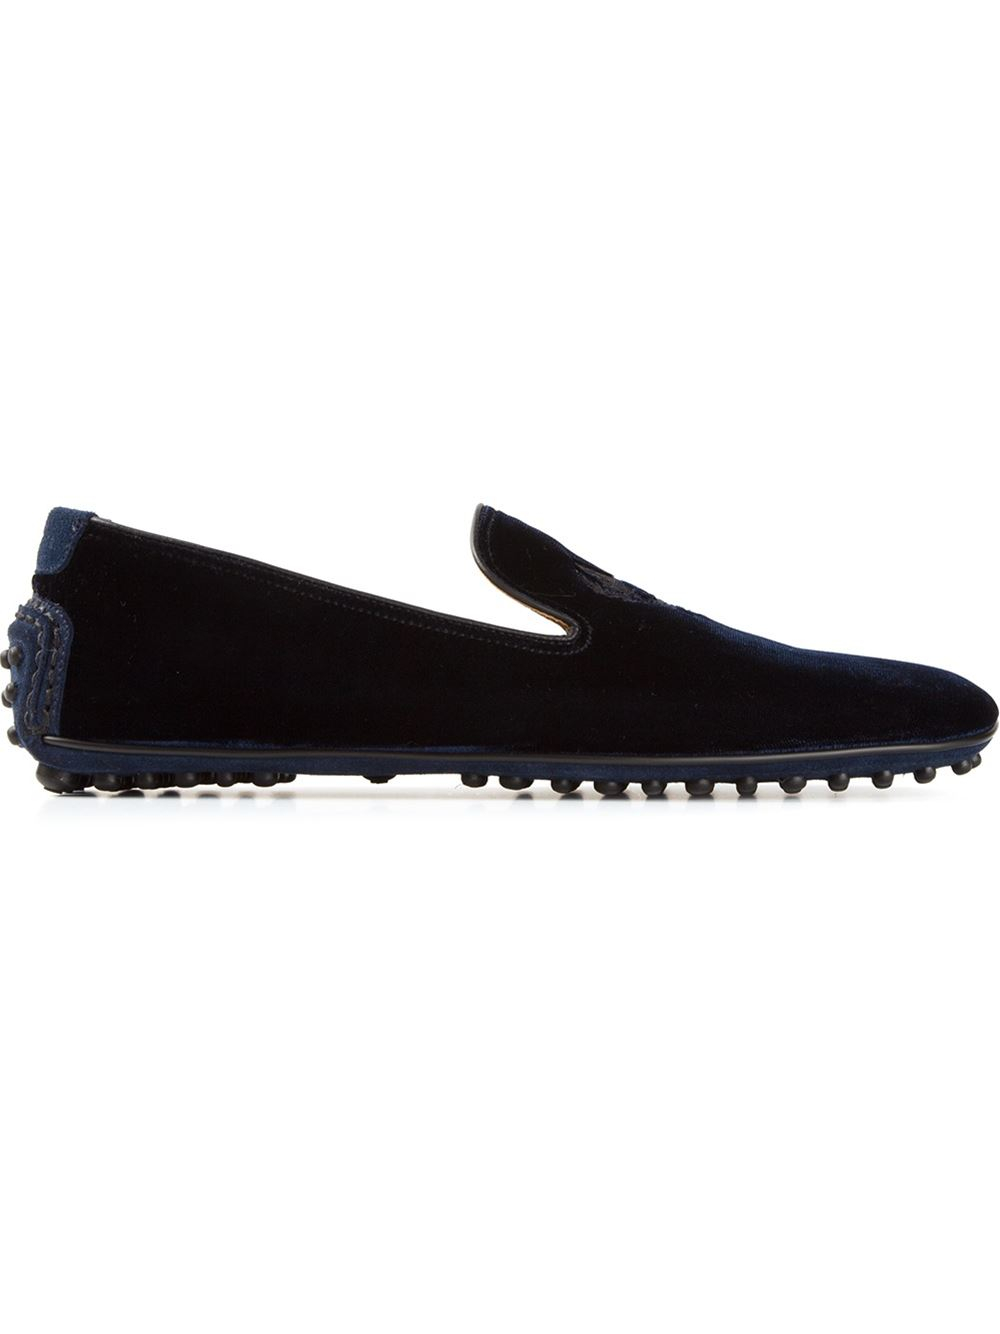 CARSHOE Slippers sale countdown package free shipping sale online sale top quality buy cheap for sale outlet 100% guaranteed 2dvNAV3fQK